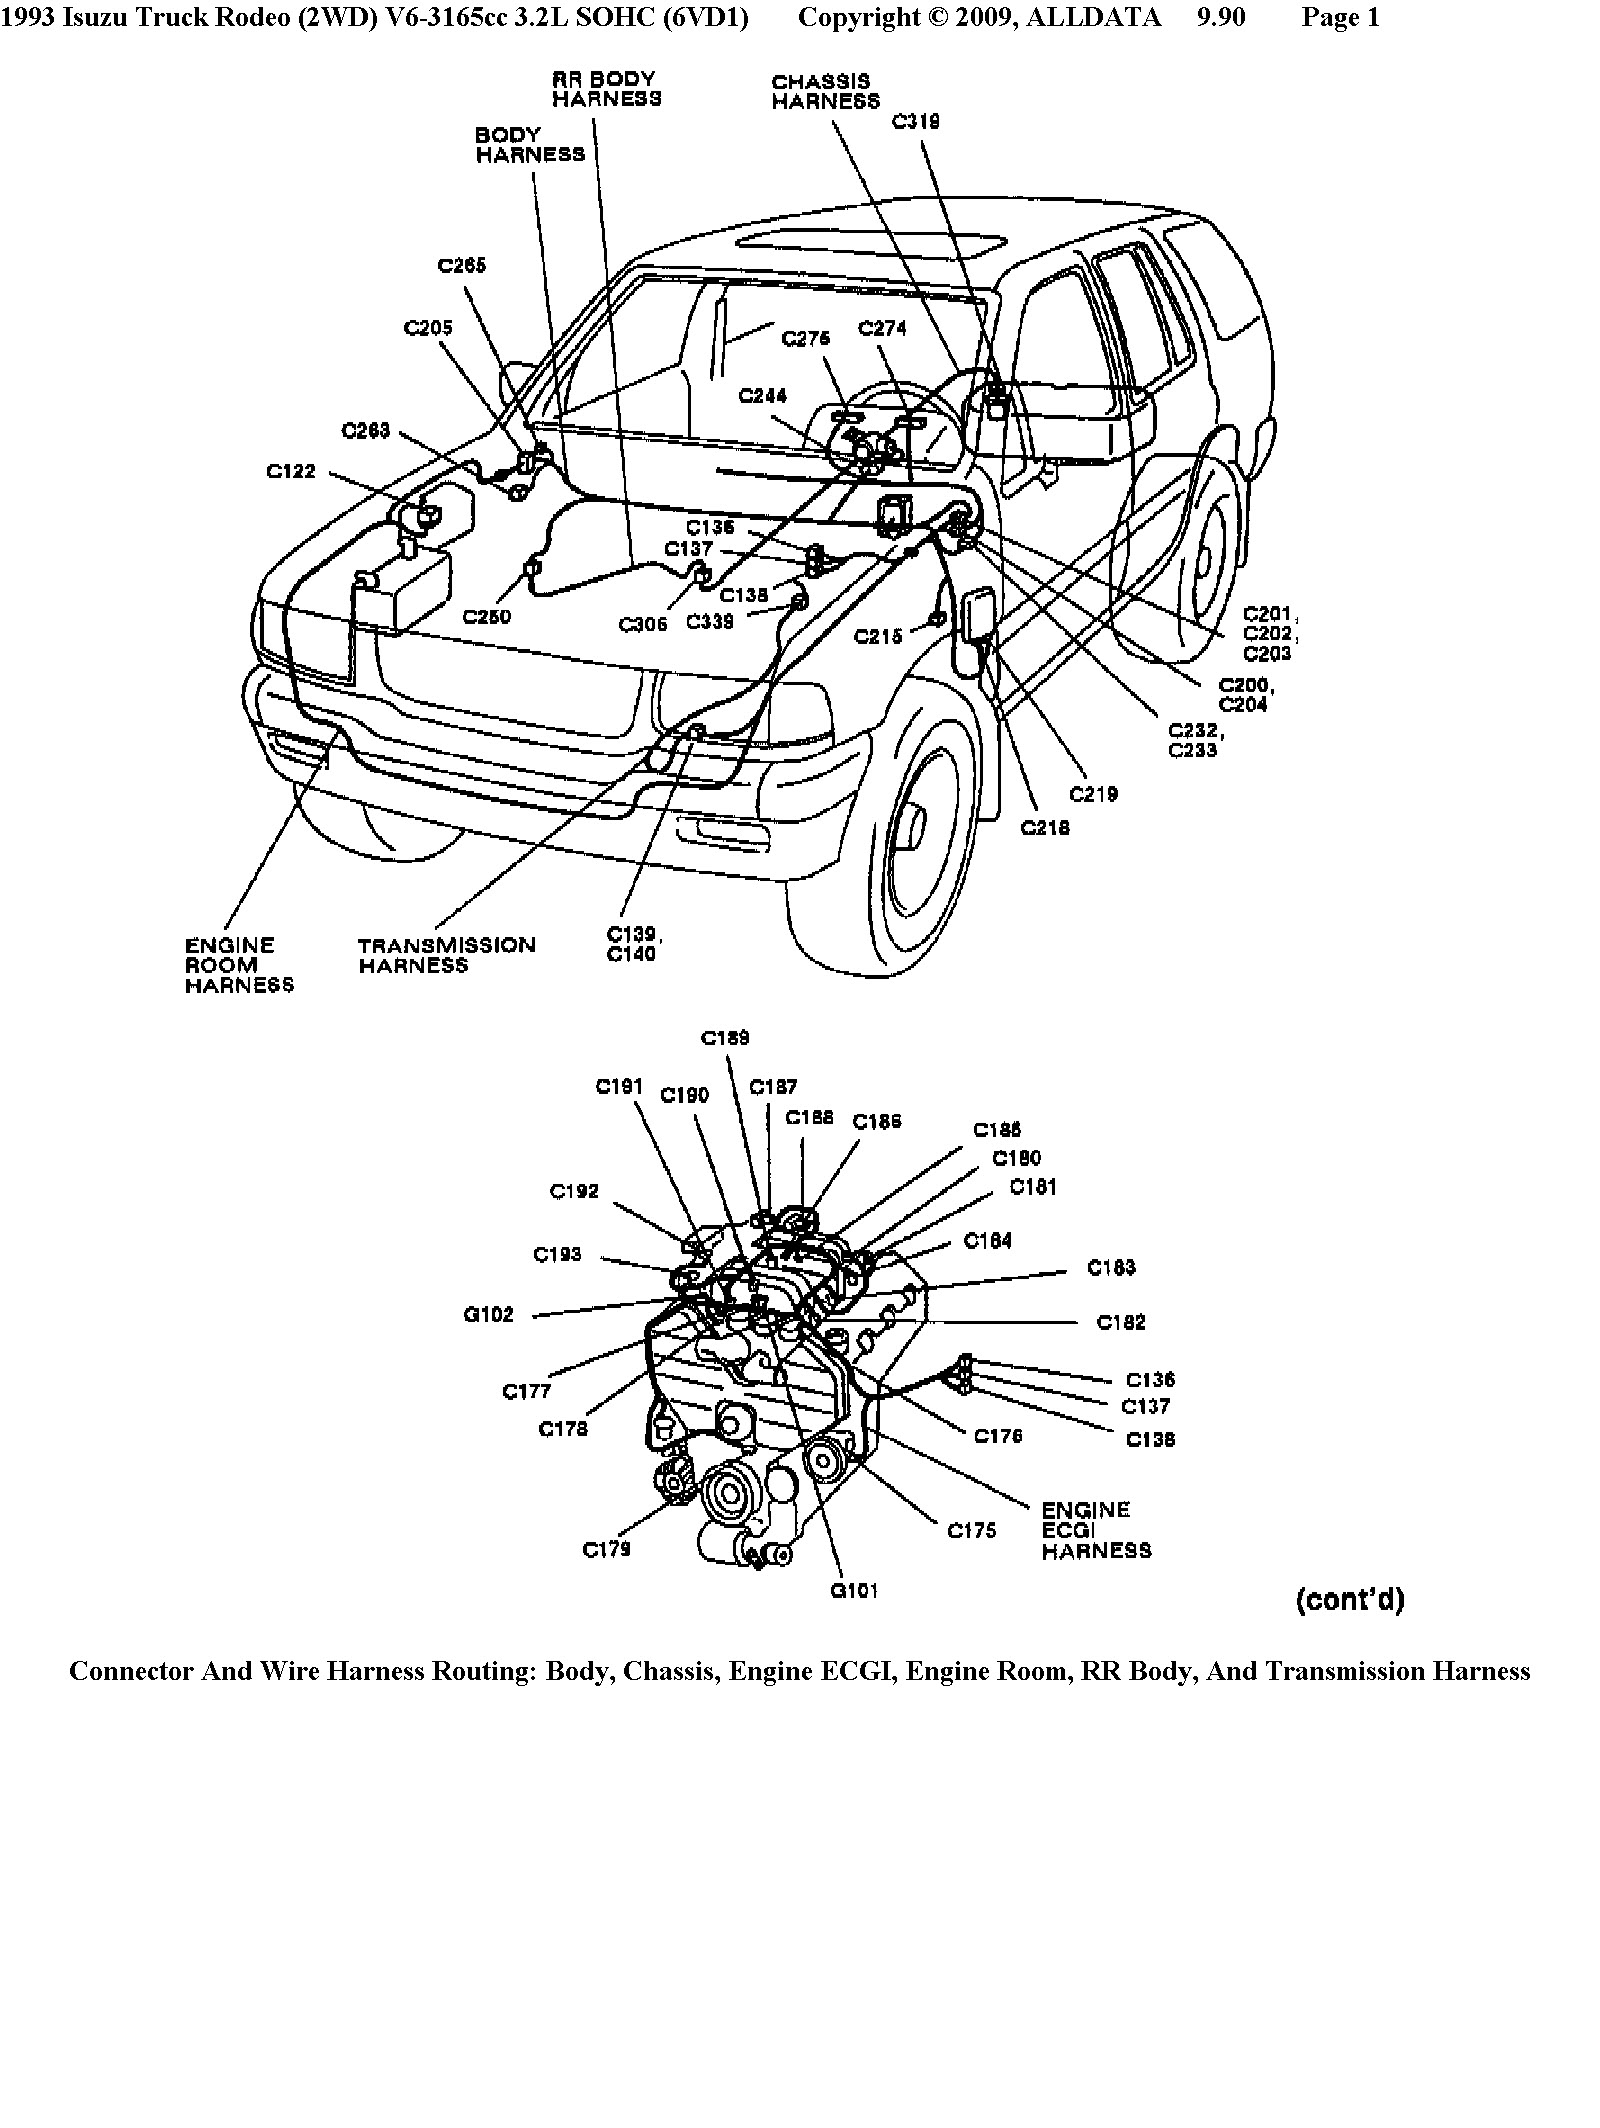 2006 scion tc clutch diagram html